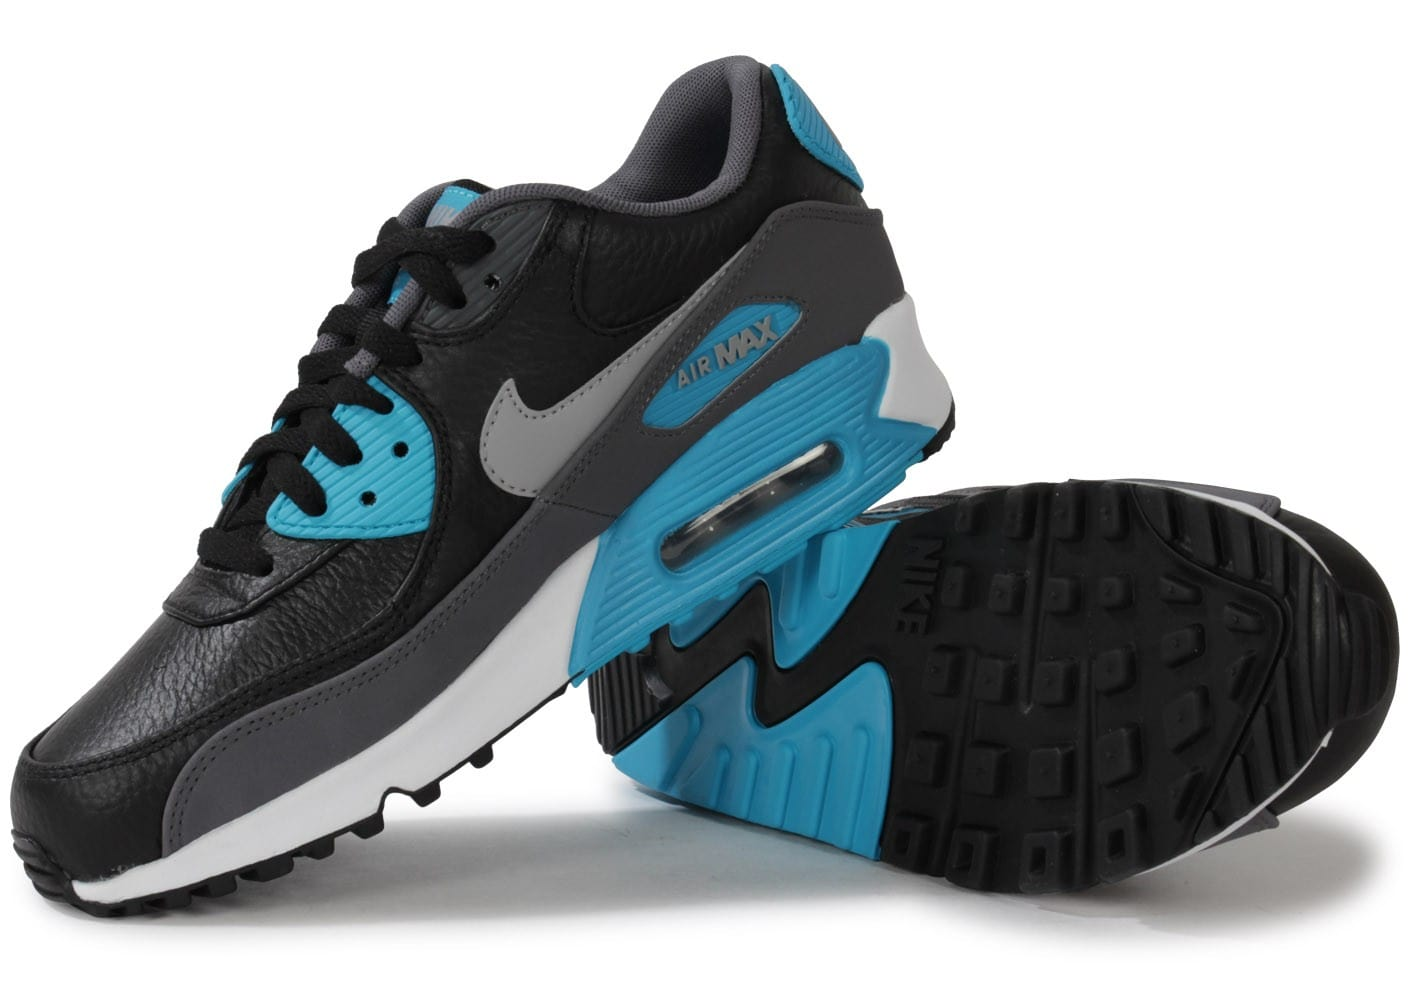 nike air max 90 ltr noire blue lagoon chaussures homme. Black Bedroom Furniture Sets. Home Design Ideas